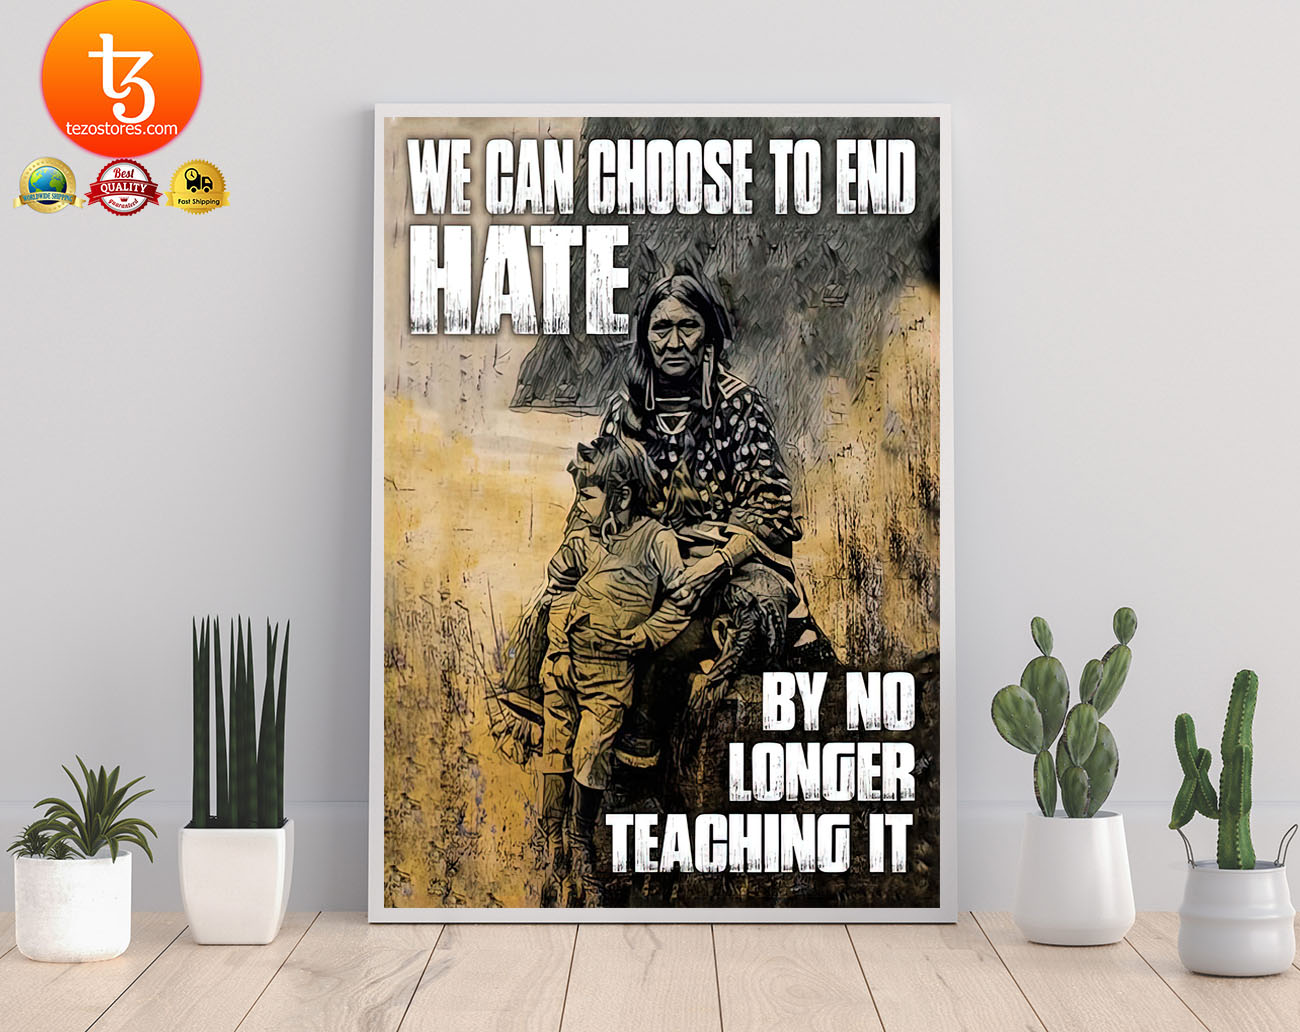 We can choose to end hate by no longer teaching it poster 21